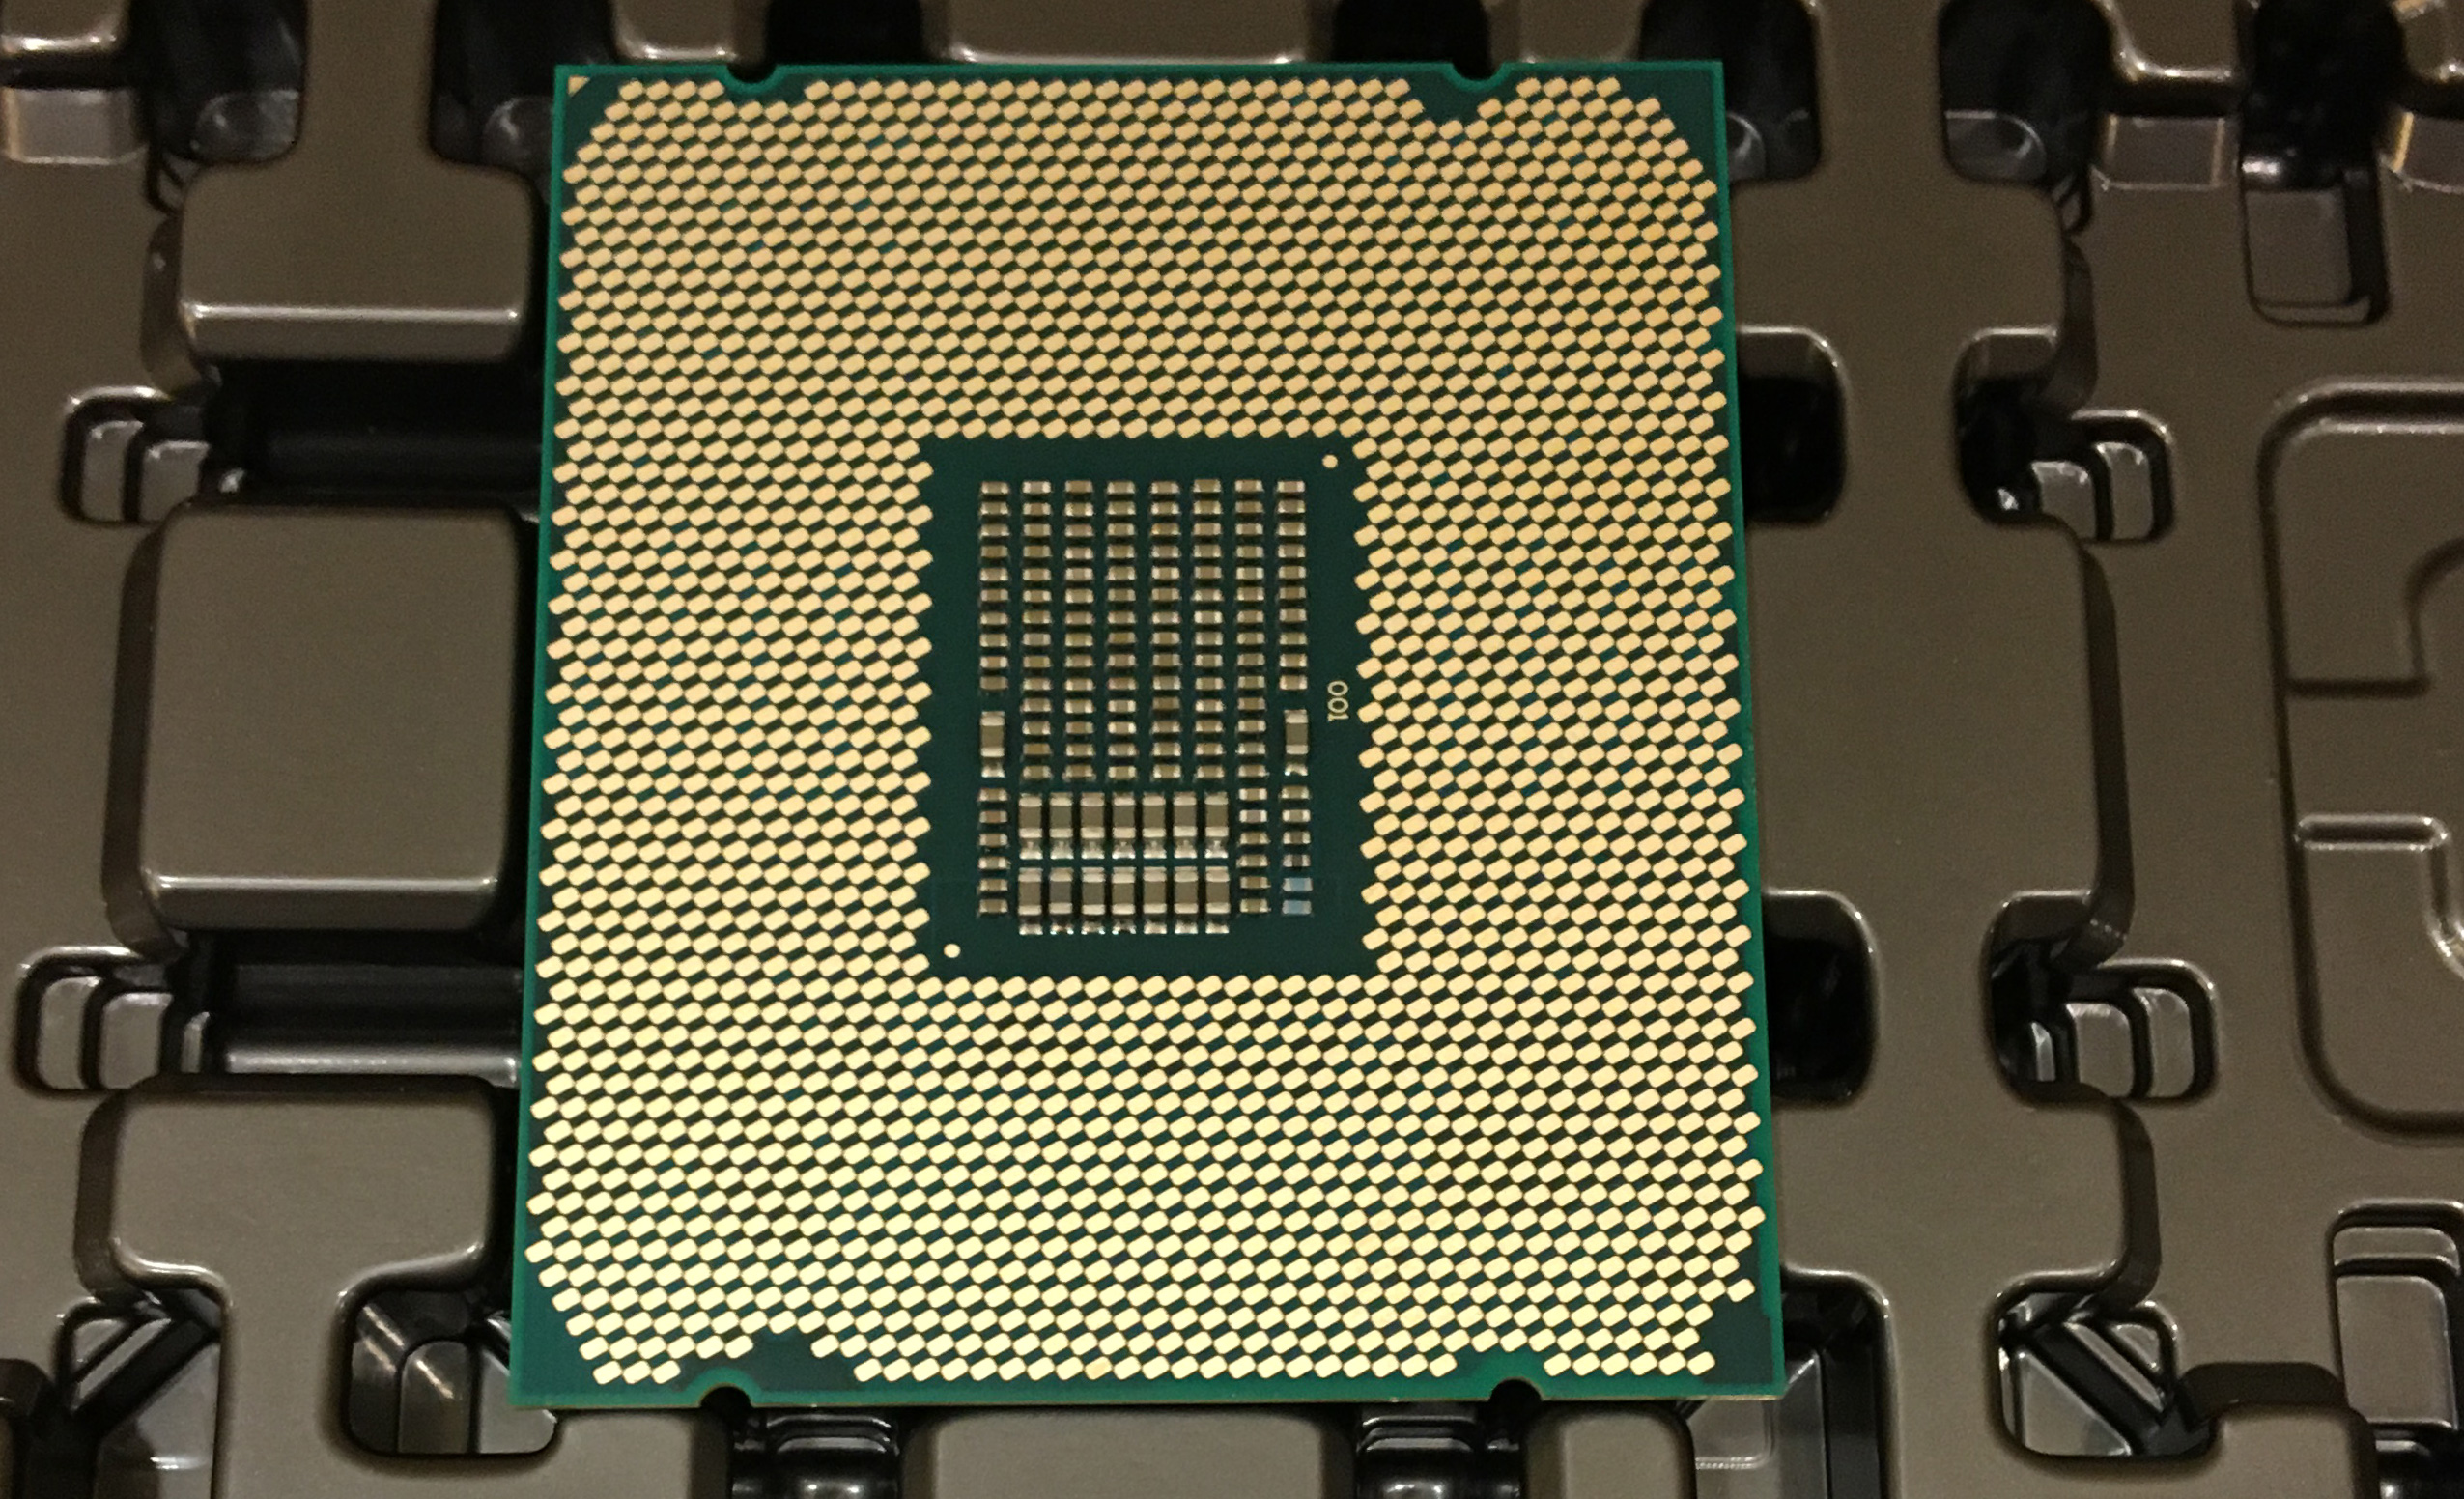 Core i9-9980XE Conclusion: A Generational Upgrade - The